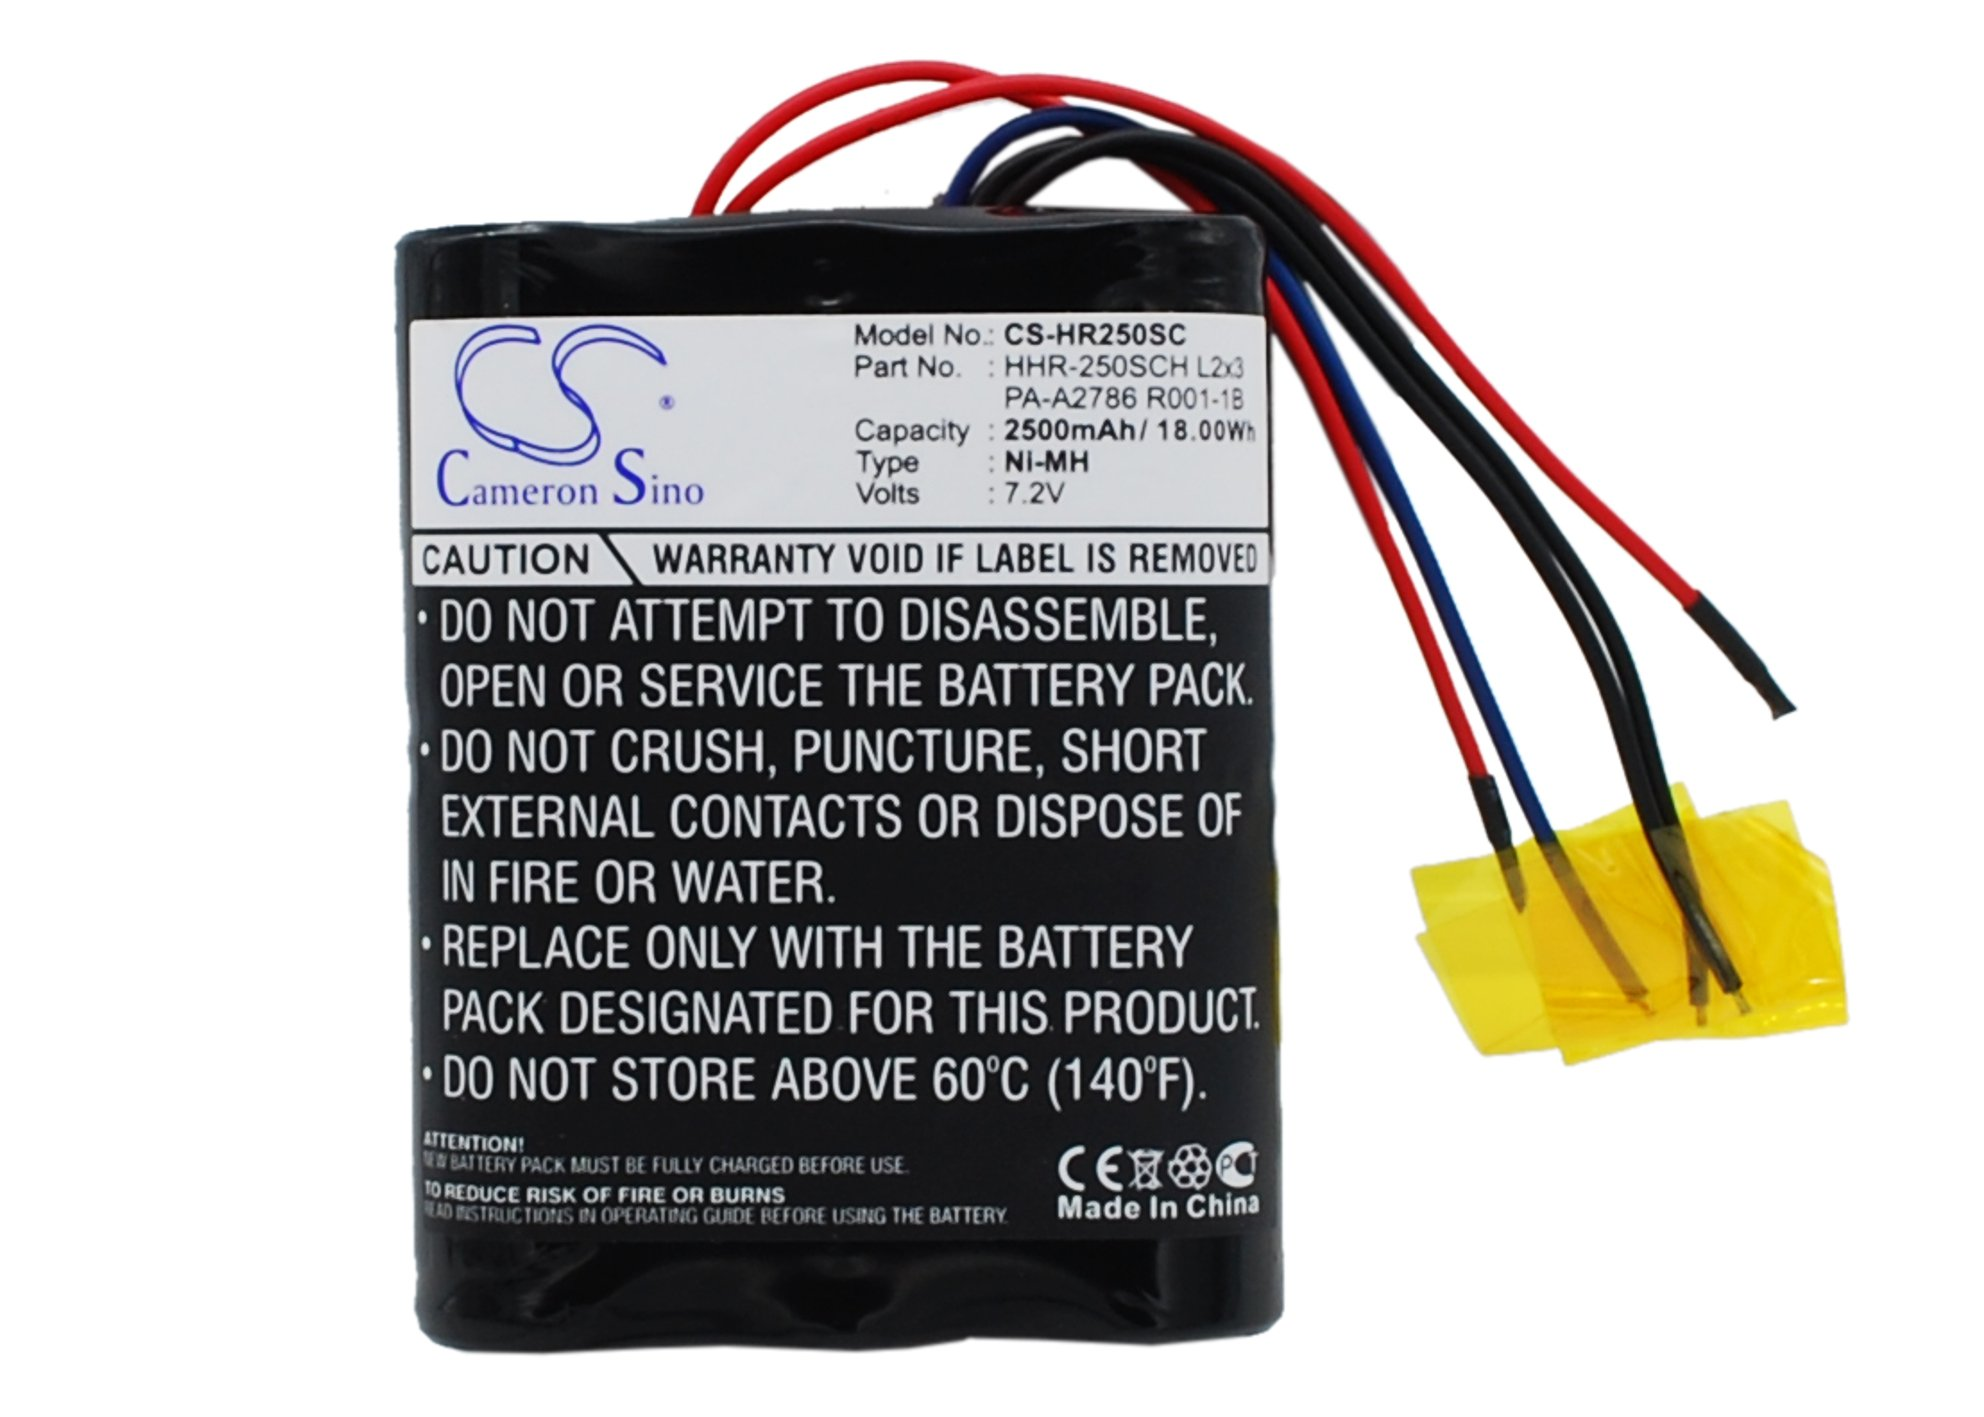 Replacement Battery for Panasonic HHR-250SCH L2x3, PA-A2786 R001-1B (2500mAh)